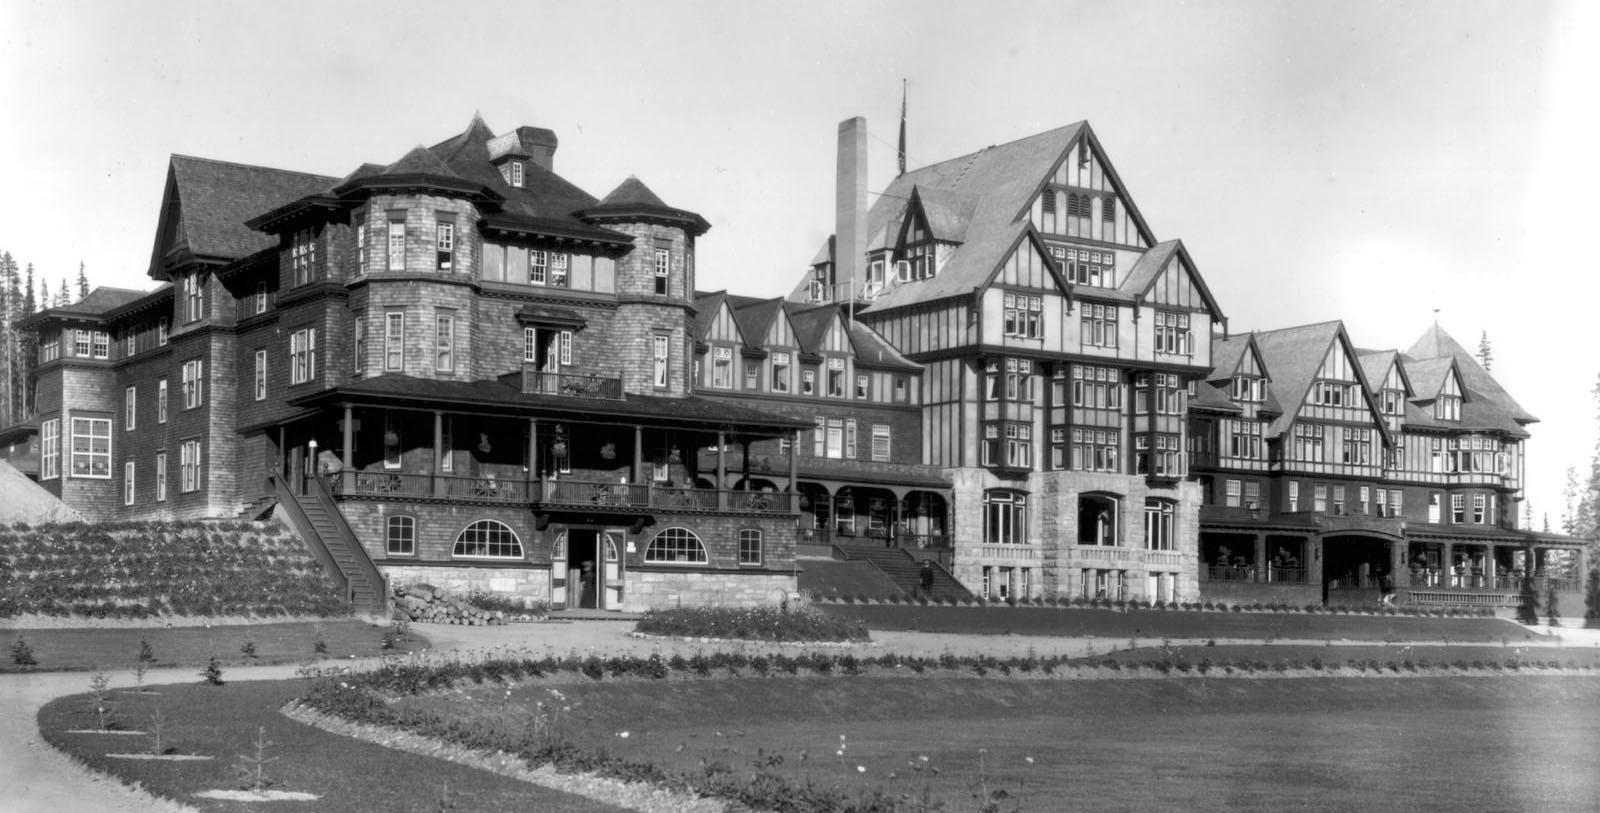 Historic exterior of the Fairmont Chateau Lake Louise in Alberta, Canada.